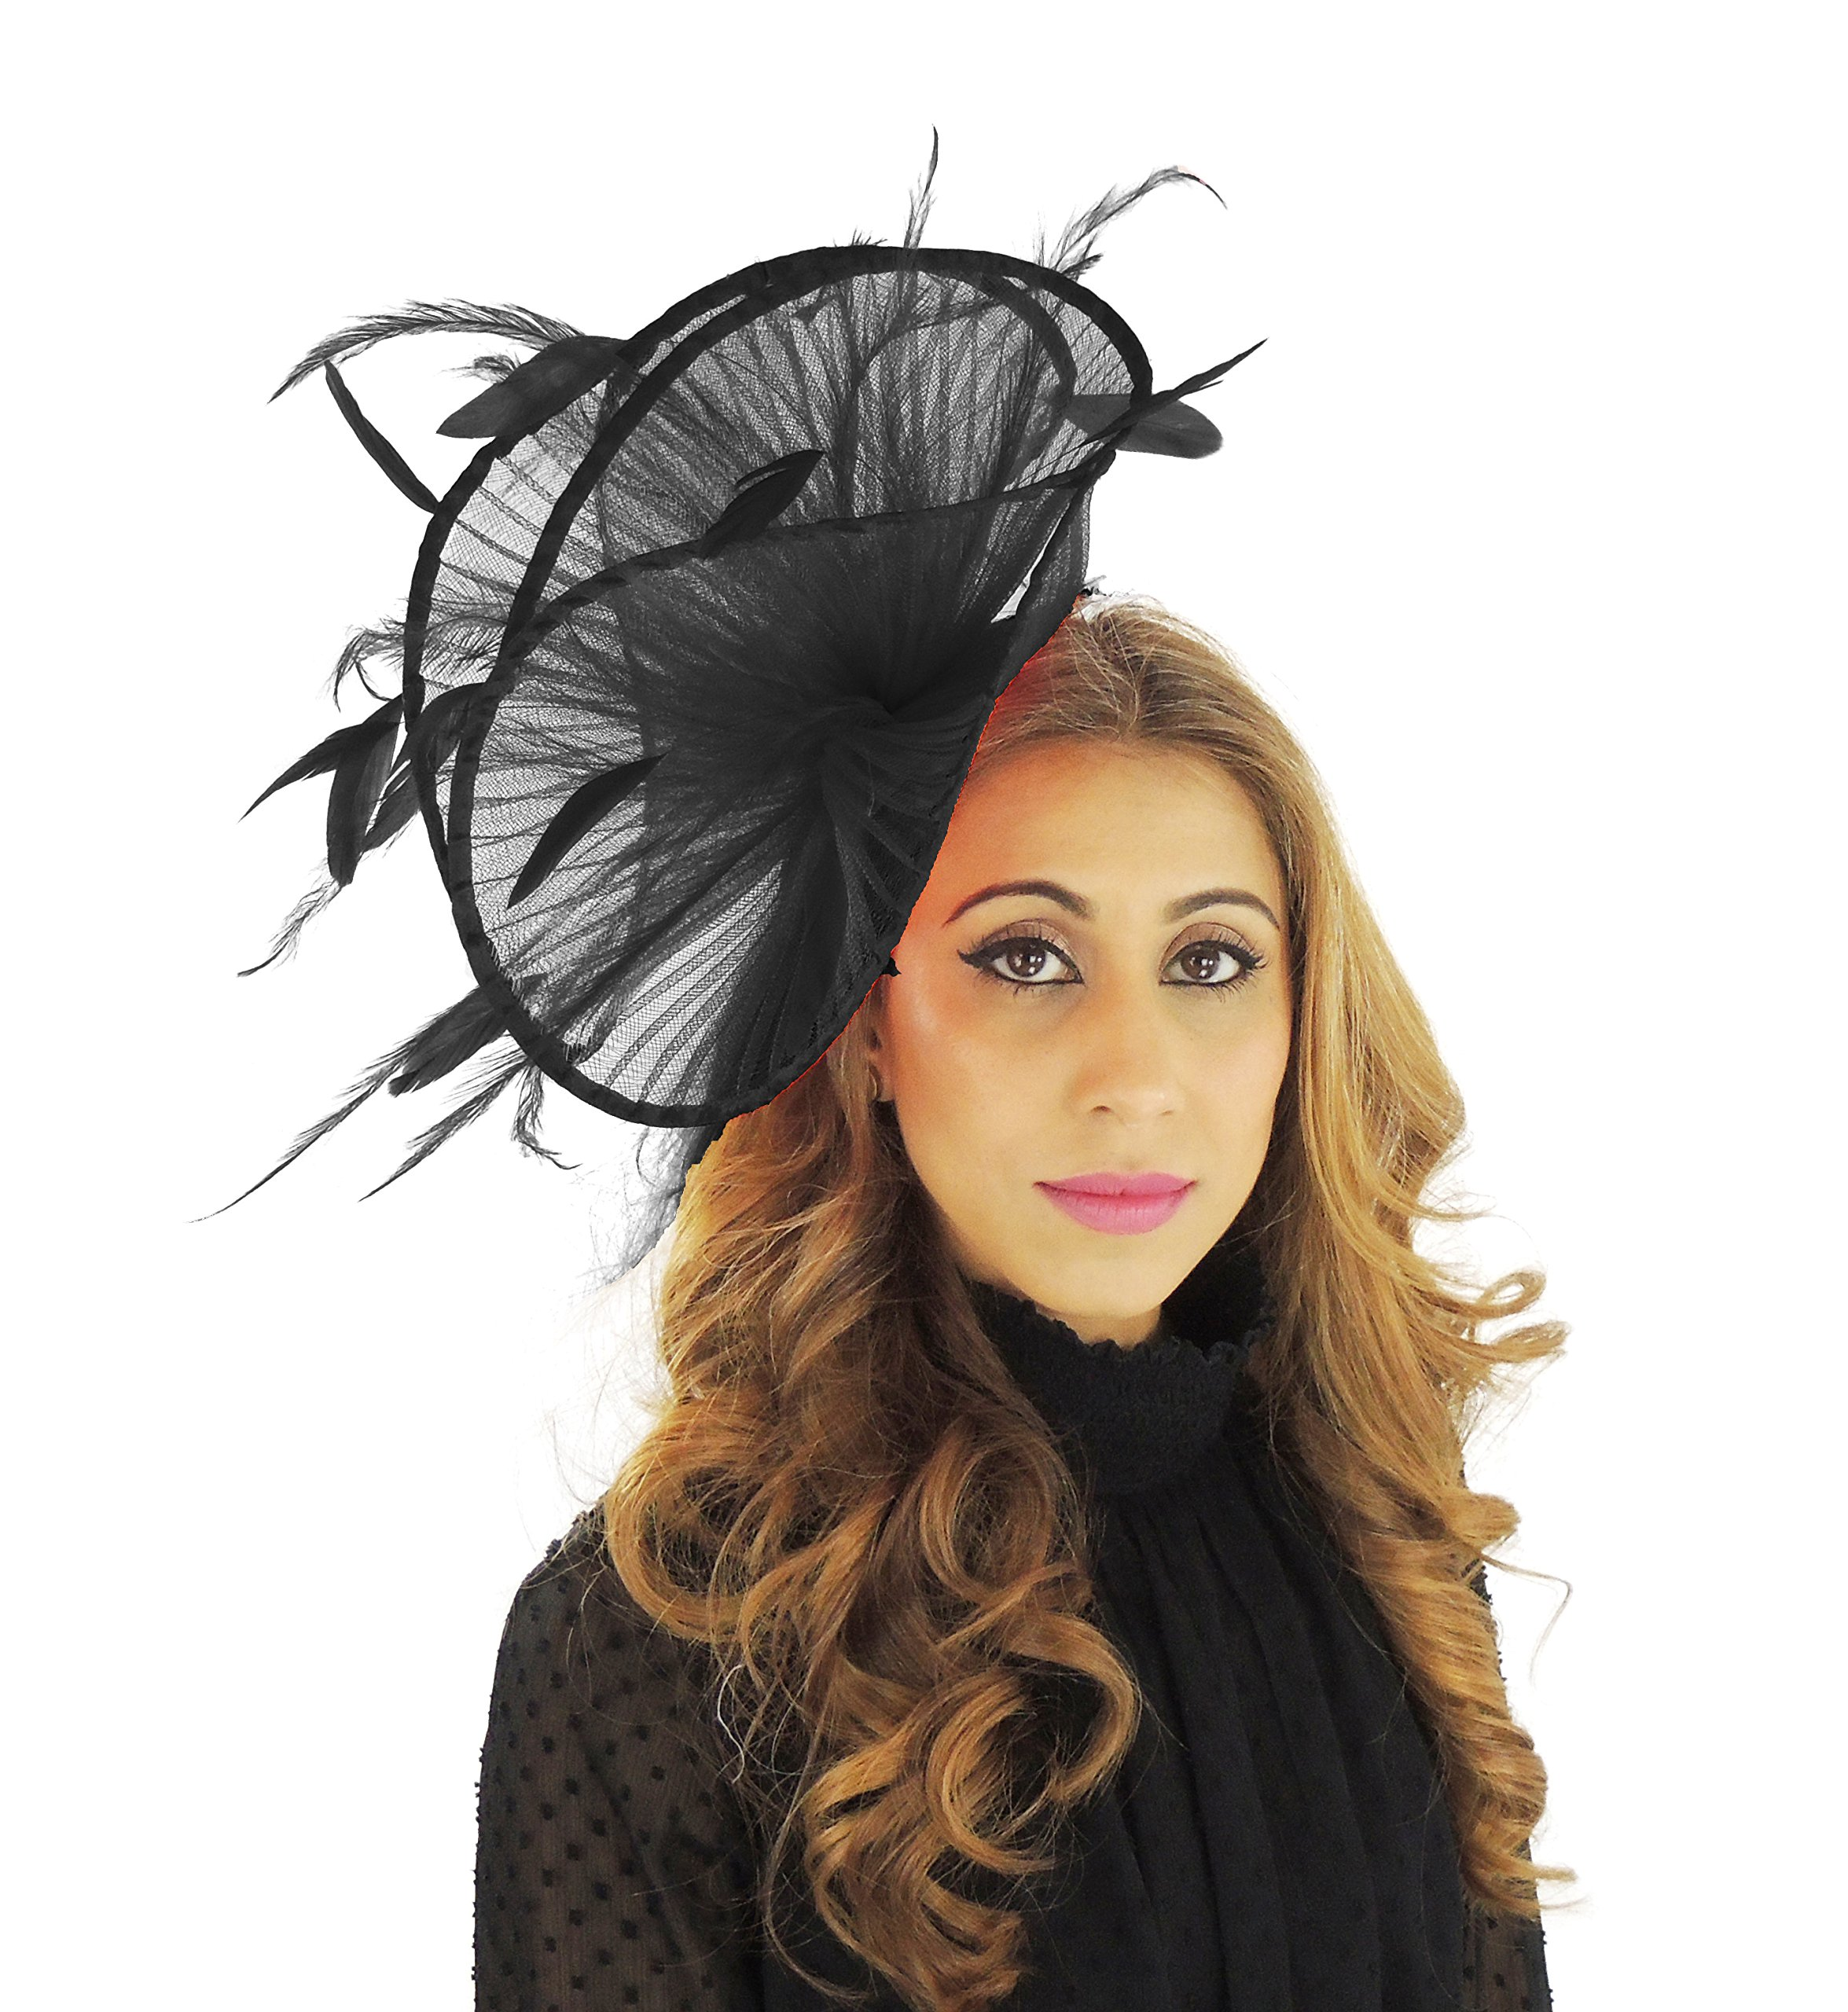 Hats By Cressida Black Fascinator Hat For Ascot Derby With Headband Afriel